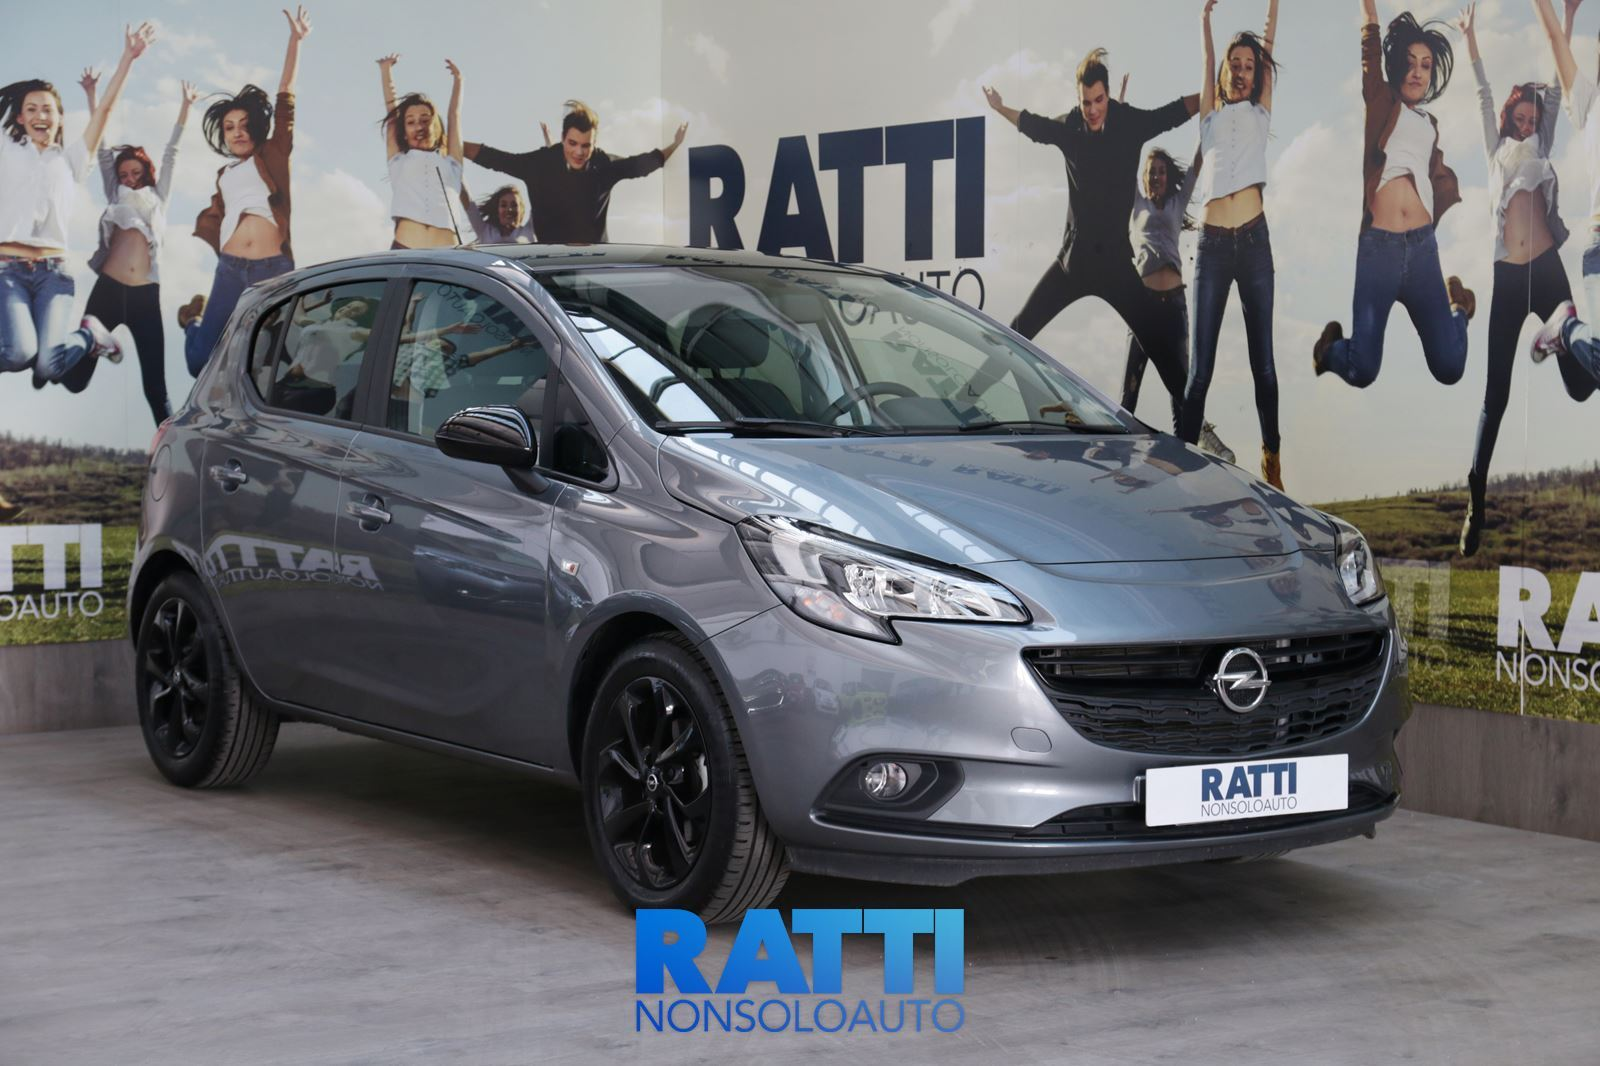 OPEL Corsa 5P B-Color 1.4 75CV MT SATIN STEEL GREY cambio Manuale Benzina Aziendale berlina due volumi 5 porte 5 posti EURO 6